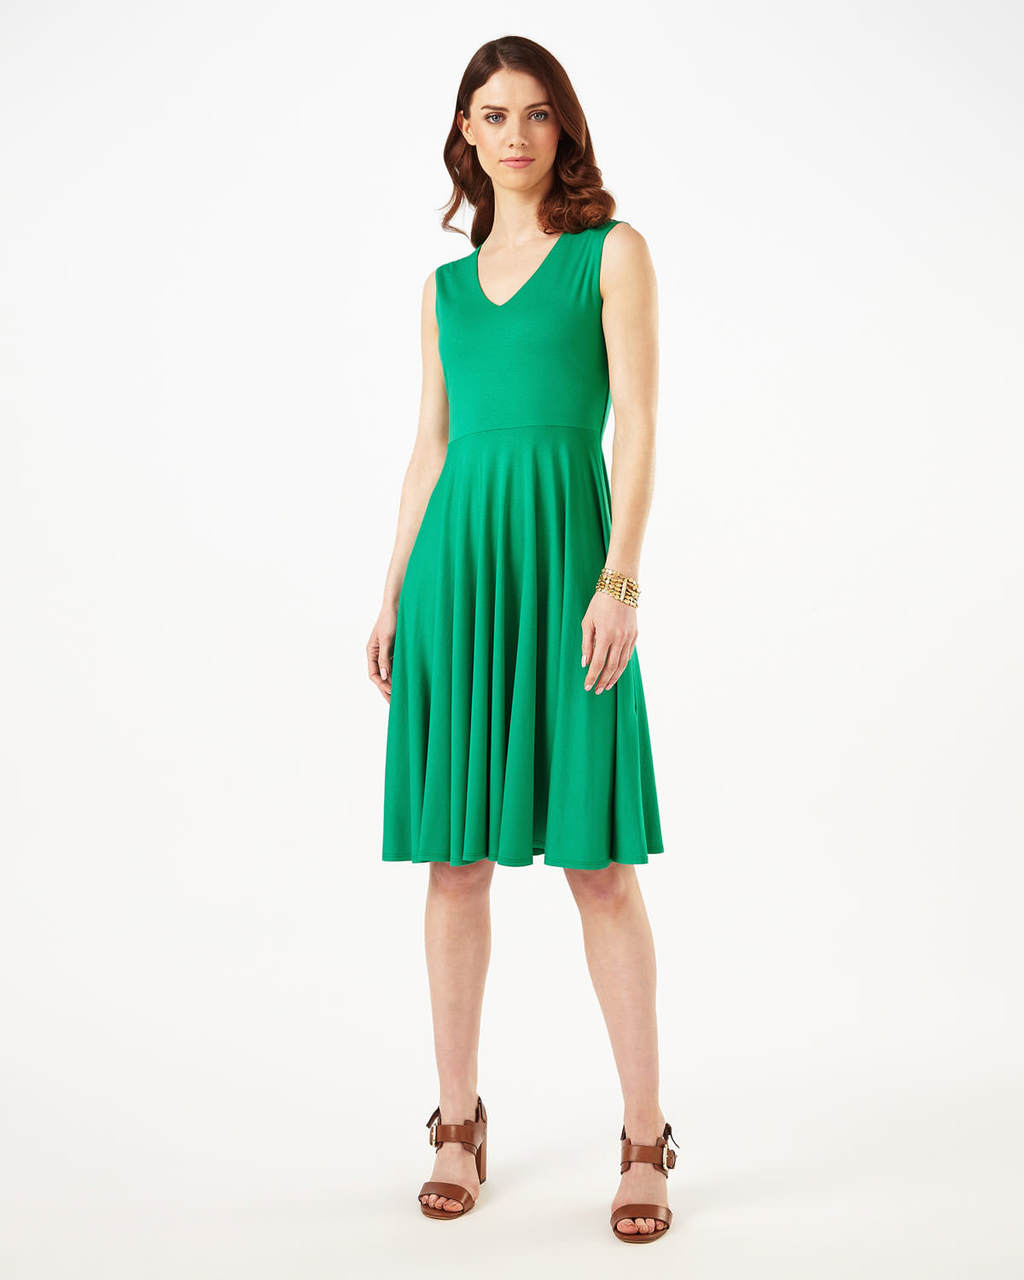 Abby Dress - neckline: v-neck; pattern: plain; sleeve style: sleeveless; predominant colour: emerald green; occasions: evening; length: on the knee; fit: fitted at waist & bust; style: fit & flare; fibres: polyester/polyamide - stretch; sleeve length: sleeveless; pattern type: fabric; texture group: jersey - stretchy/drapey; season: s/s 2016; wardrobe: event